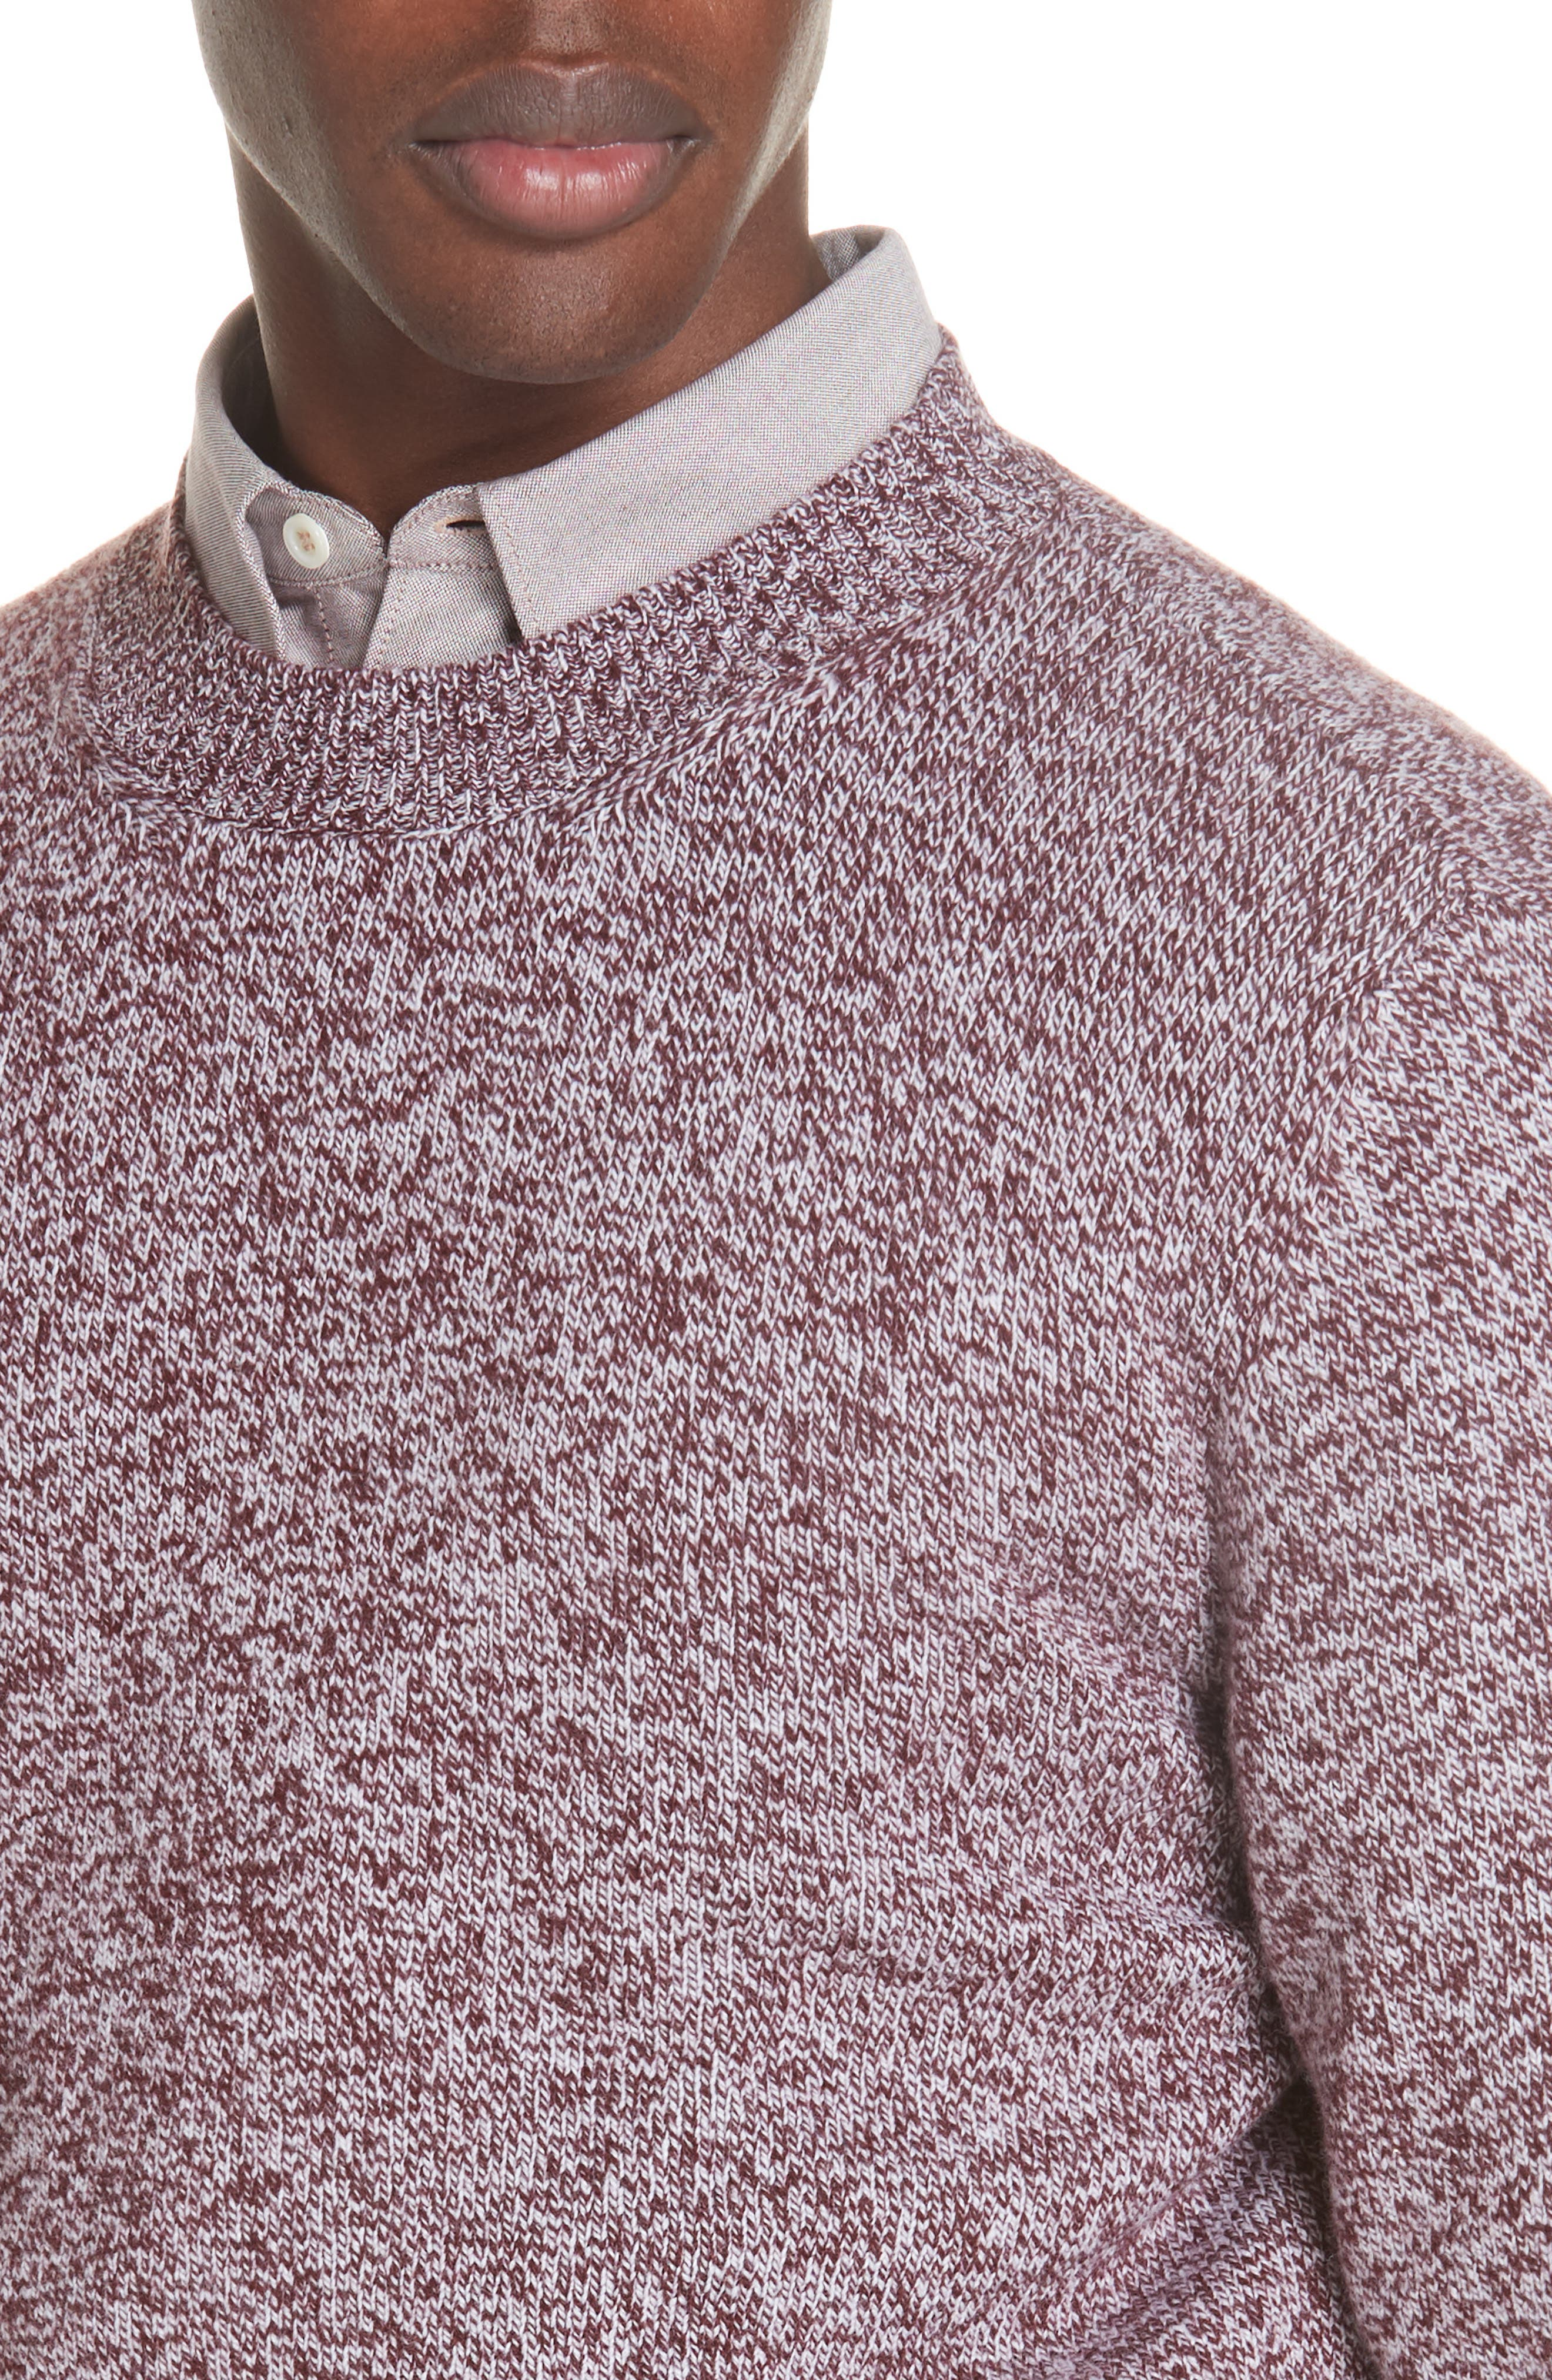 Marble Wool Sweater,                             Alternate thumbnail 4, color,                             602